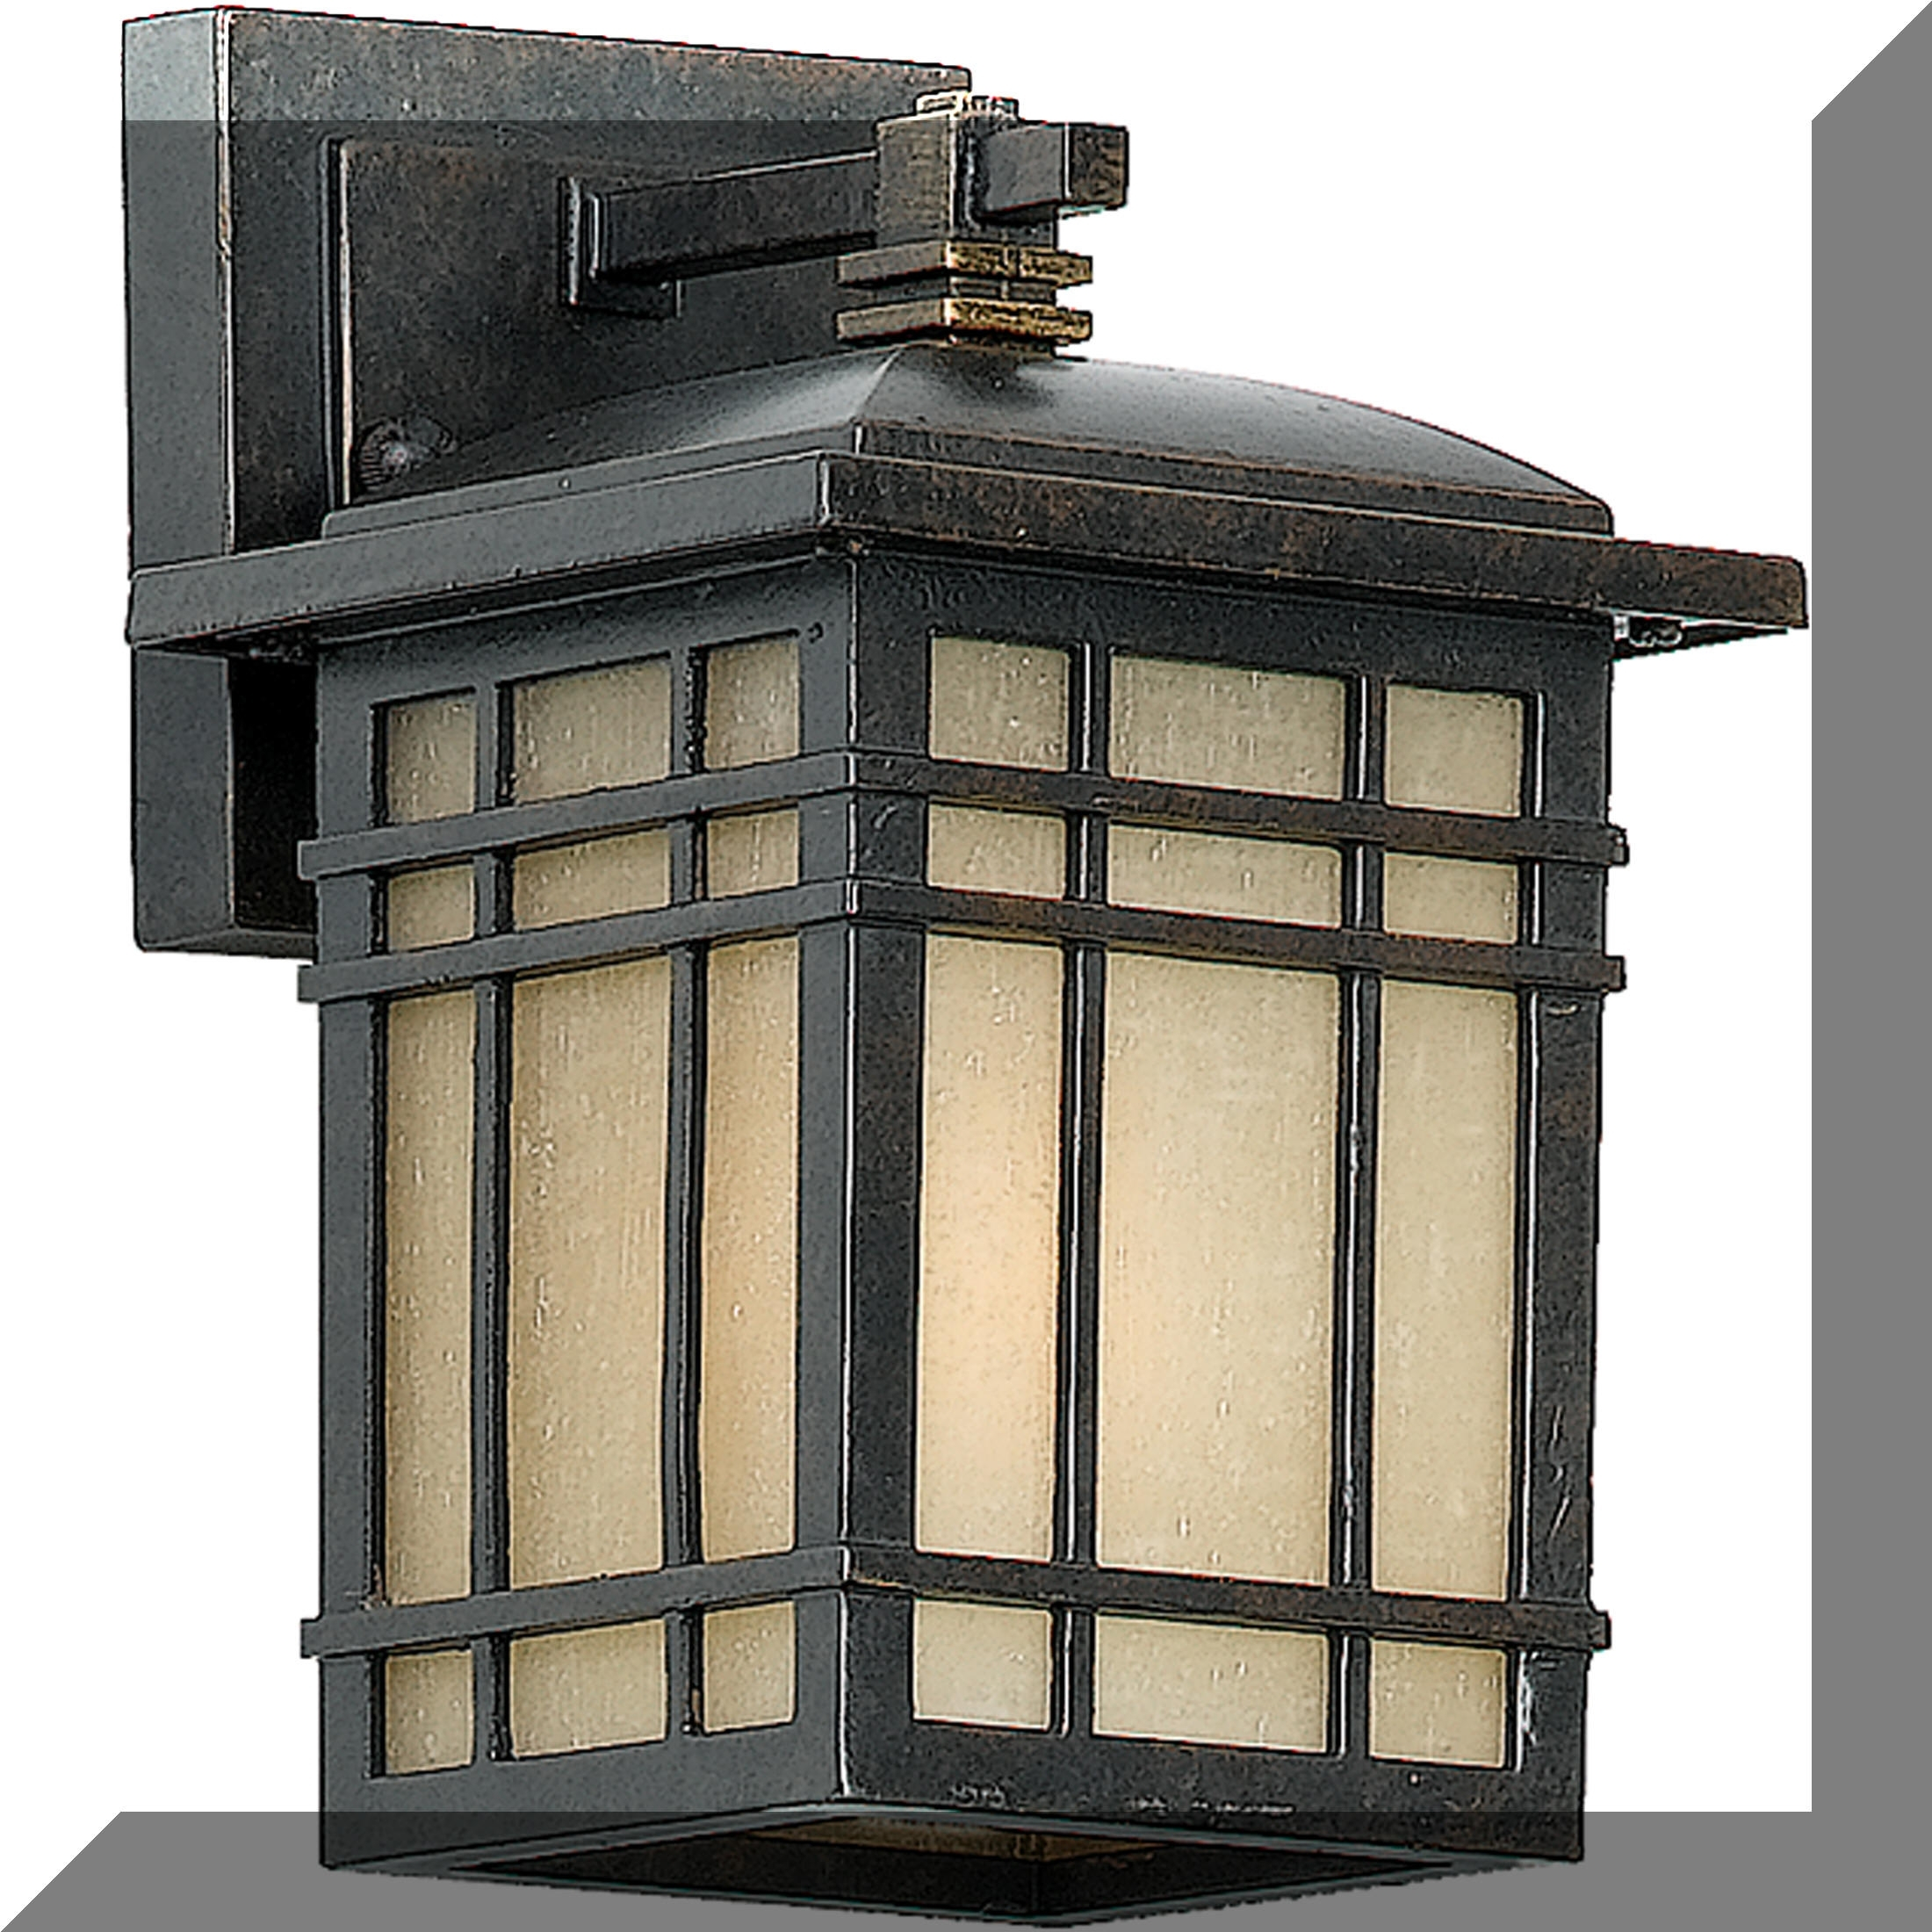 Japanese And Oriental Outdoor Lighting Fixtures pertaining to Outdoor Japanese Lanterns (Image 6 of 20)